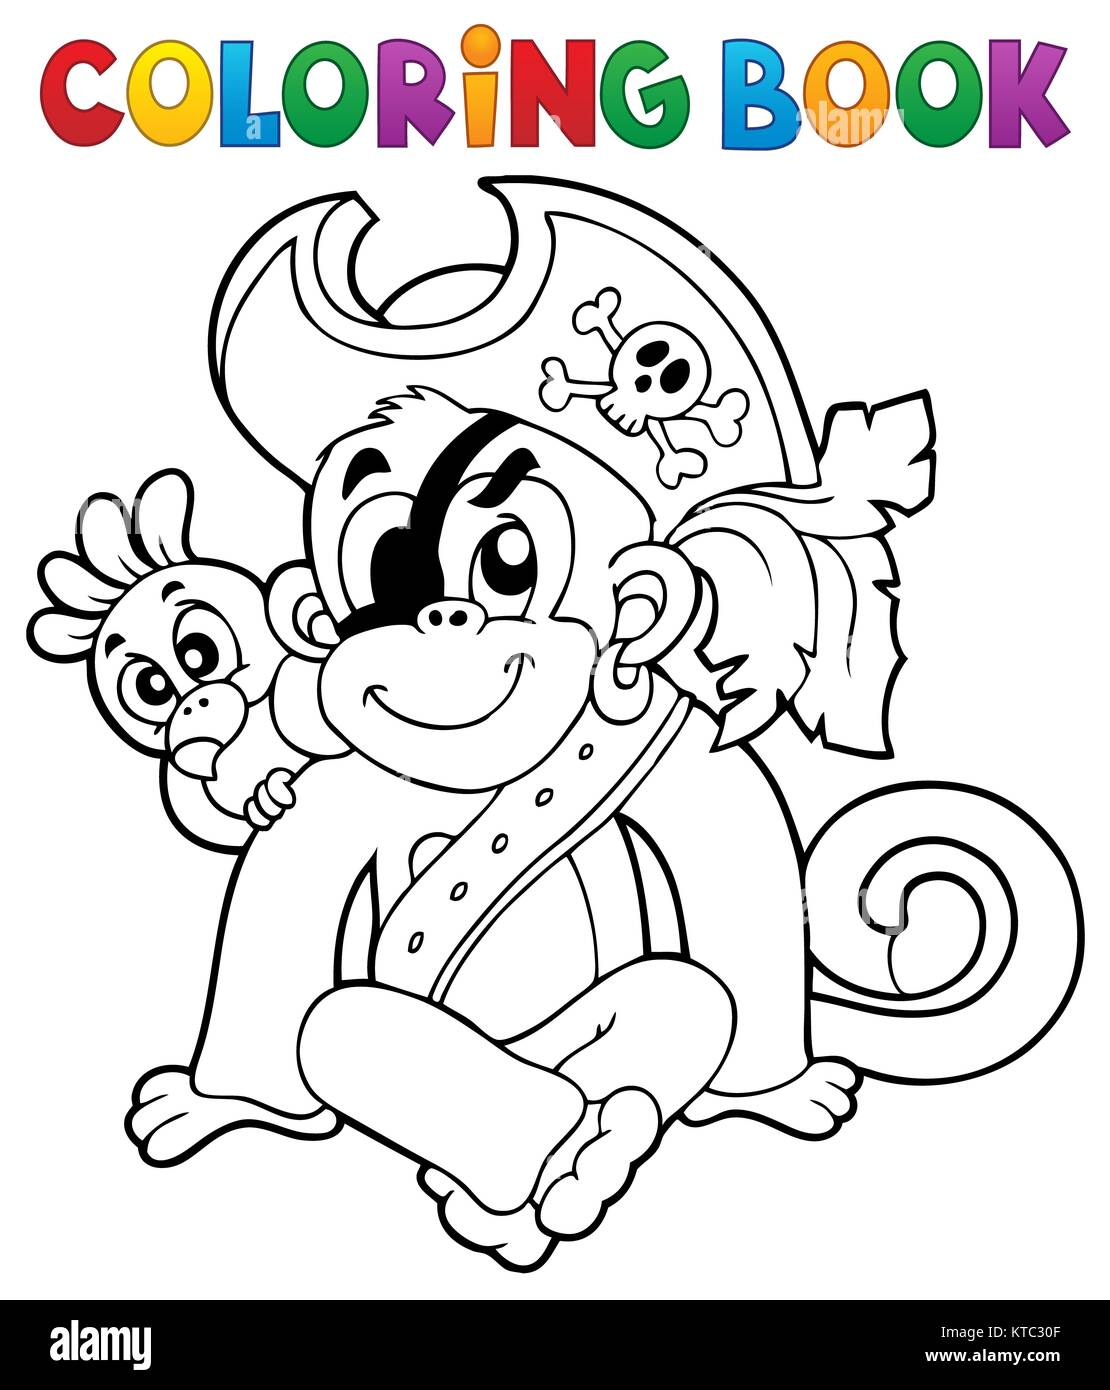 Coloring book pirate monkey image 1 - Stock Image